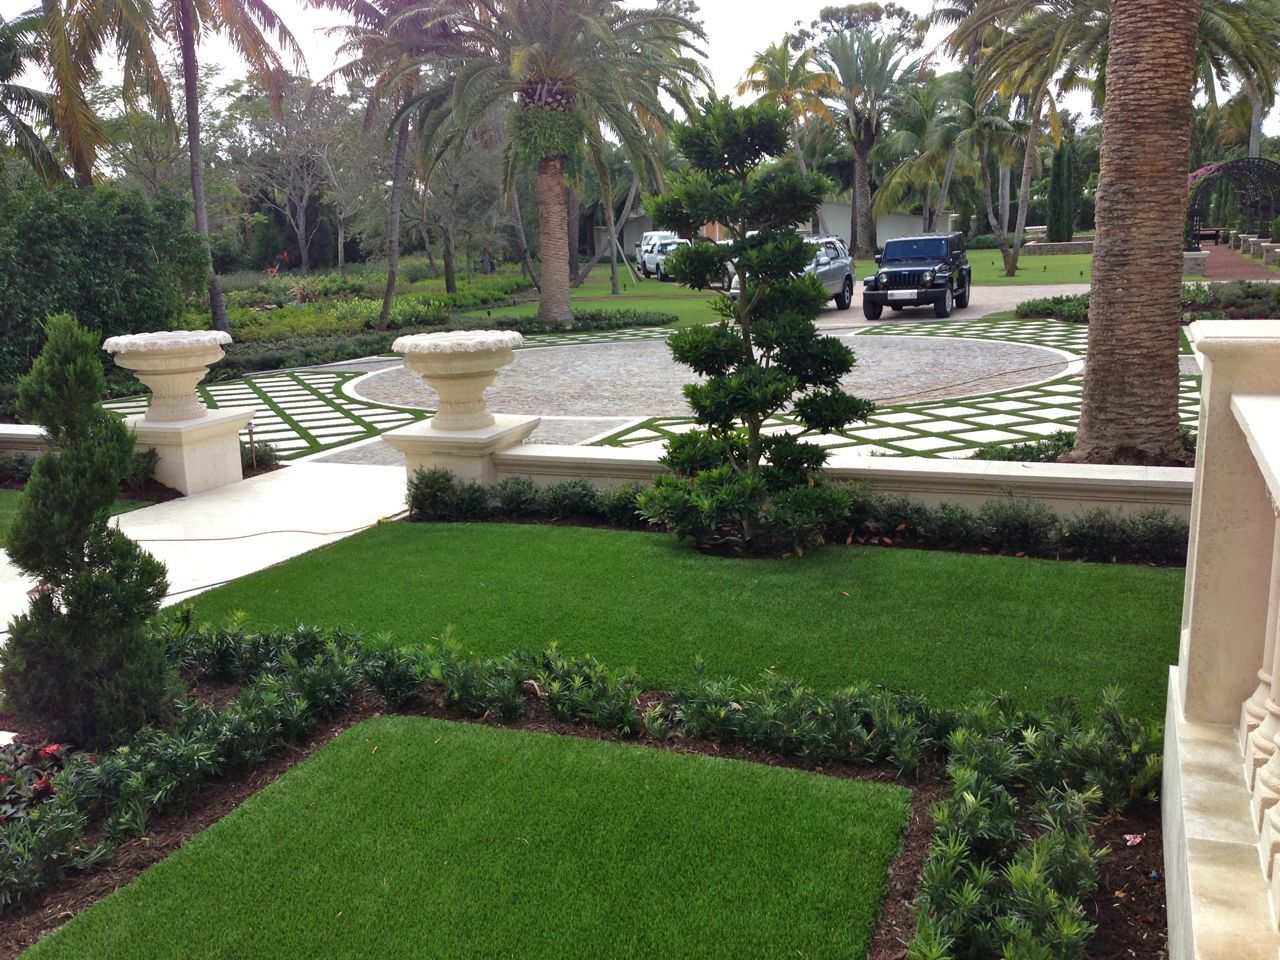 Who installs synthetic lawns Orlando?